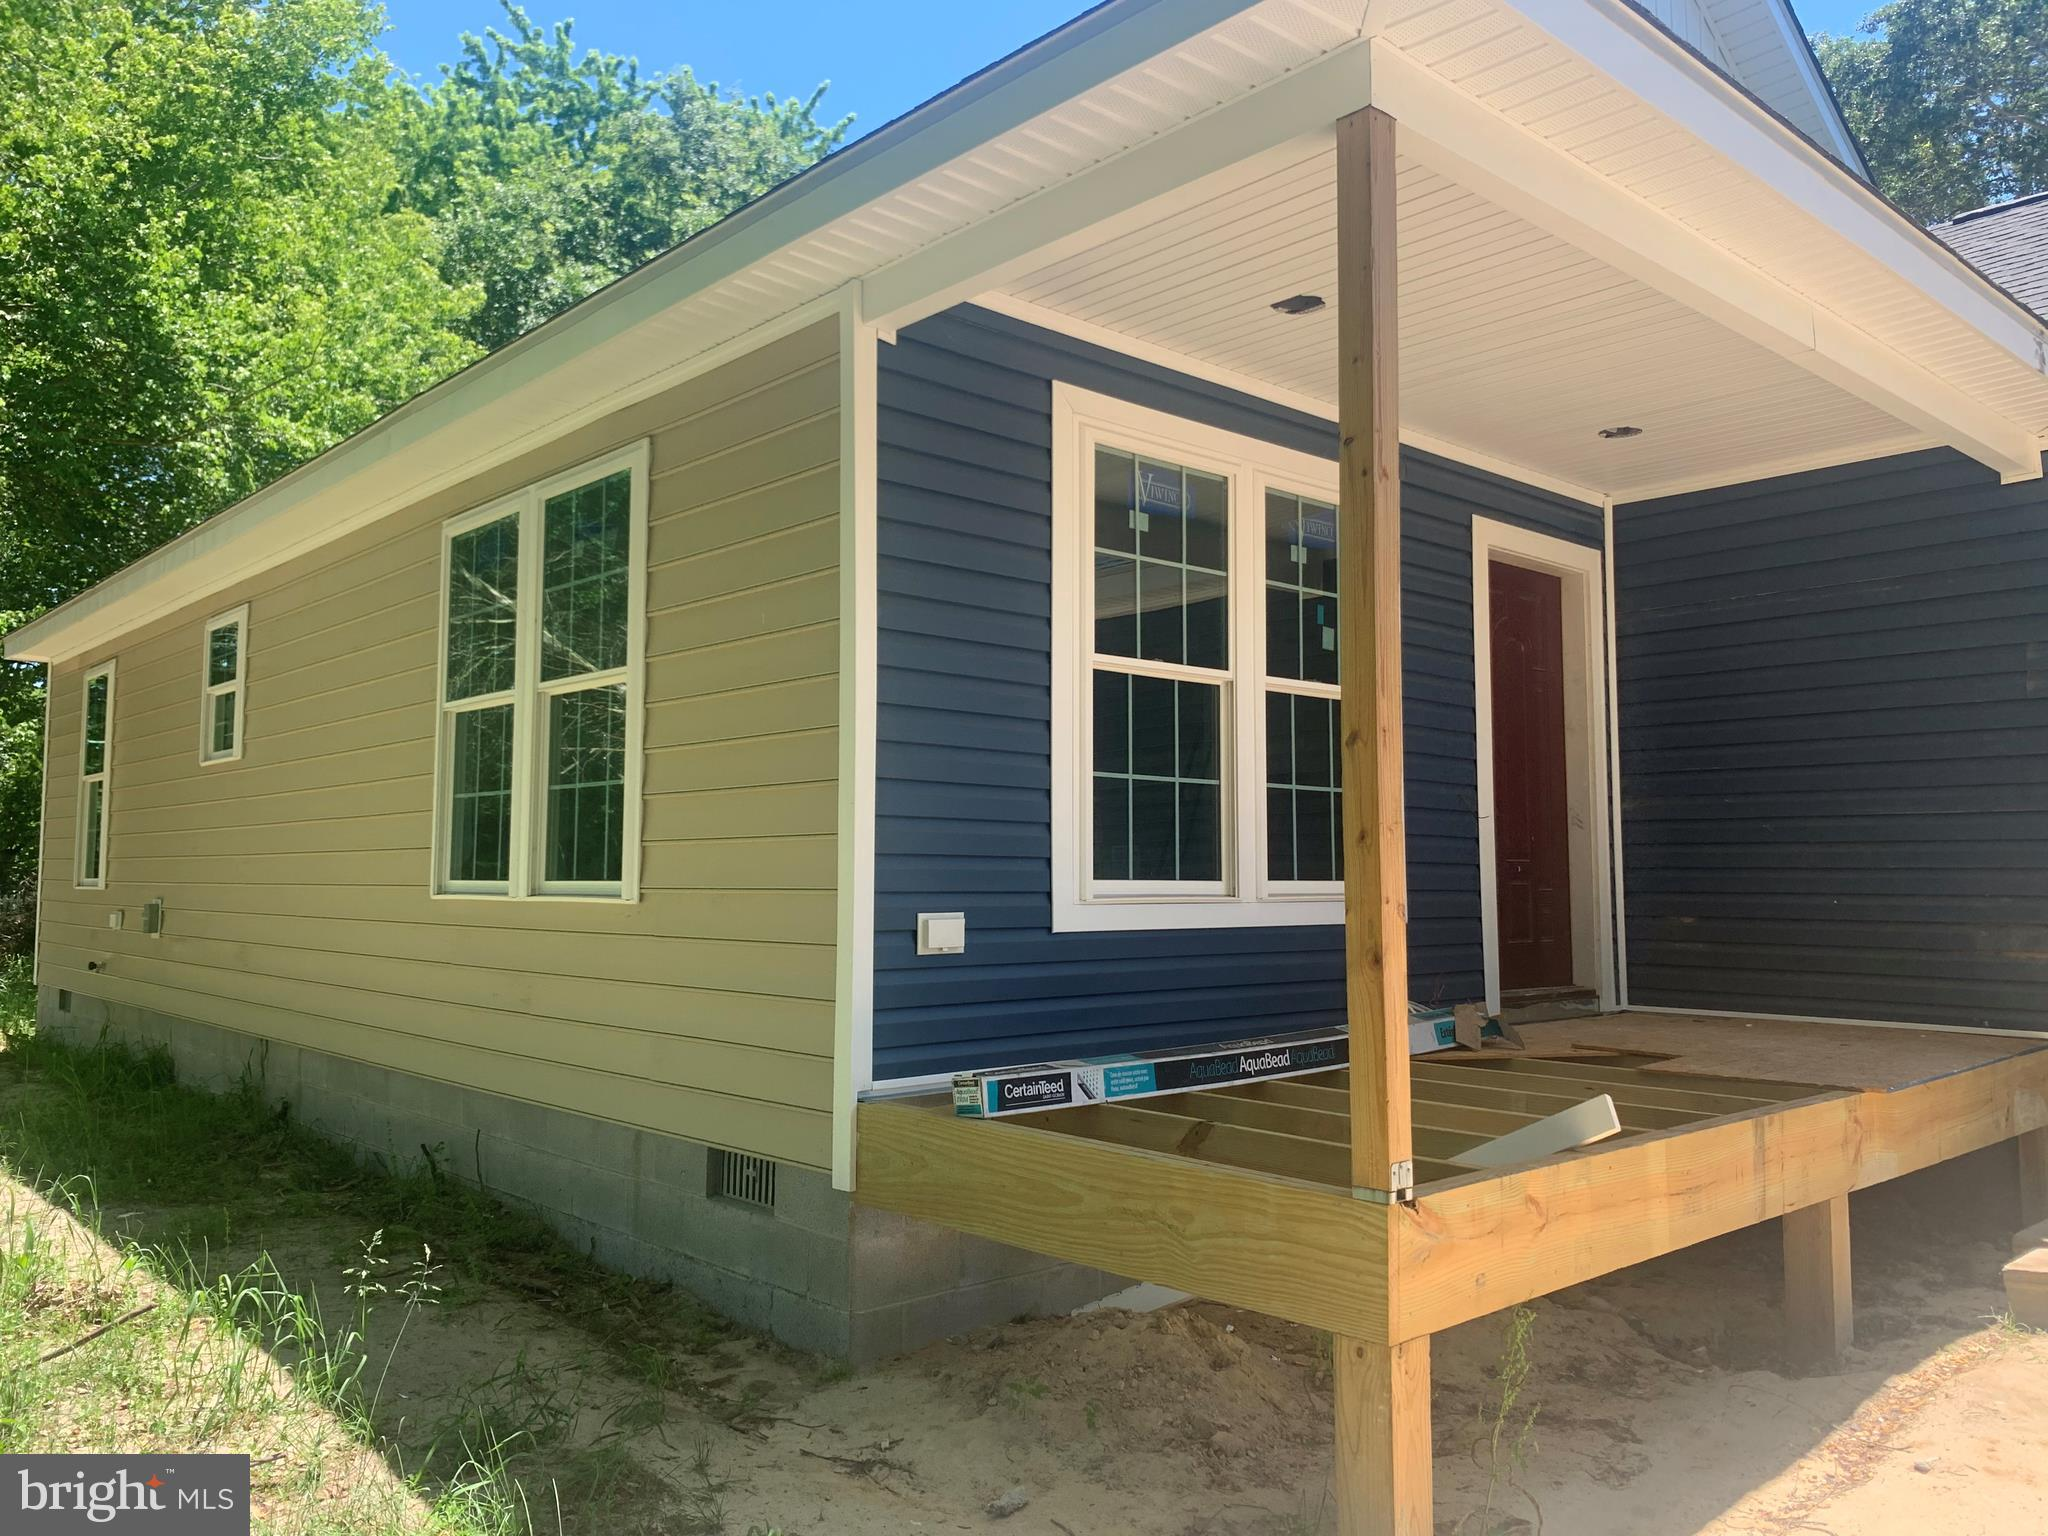 New Construction located in Town of Ellendale.2 Car attached garage.Owner is licensed Delaware Real Estate Agent. Completion within 30 days.